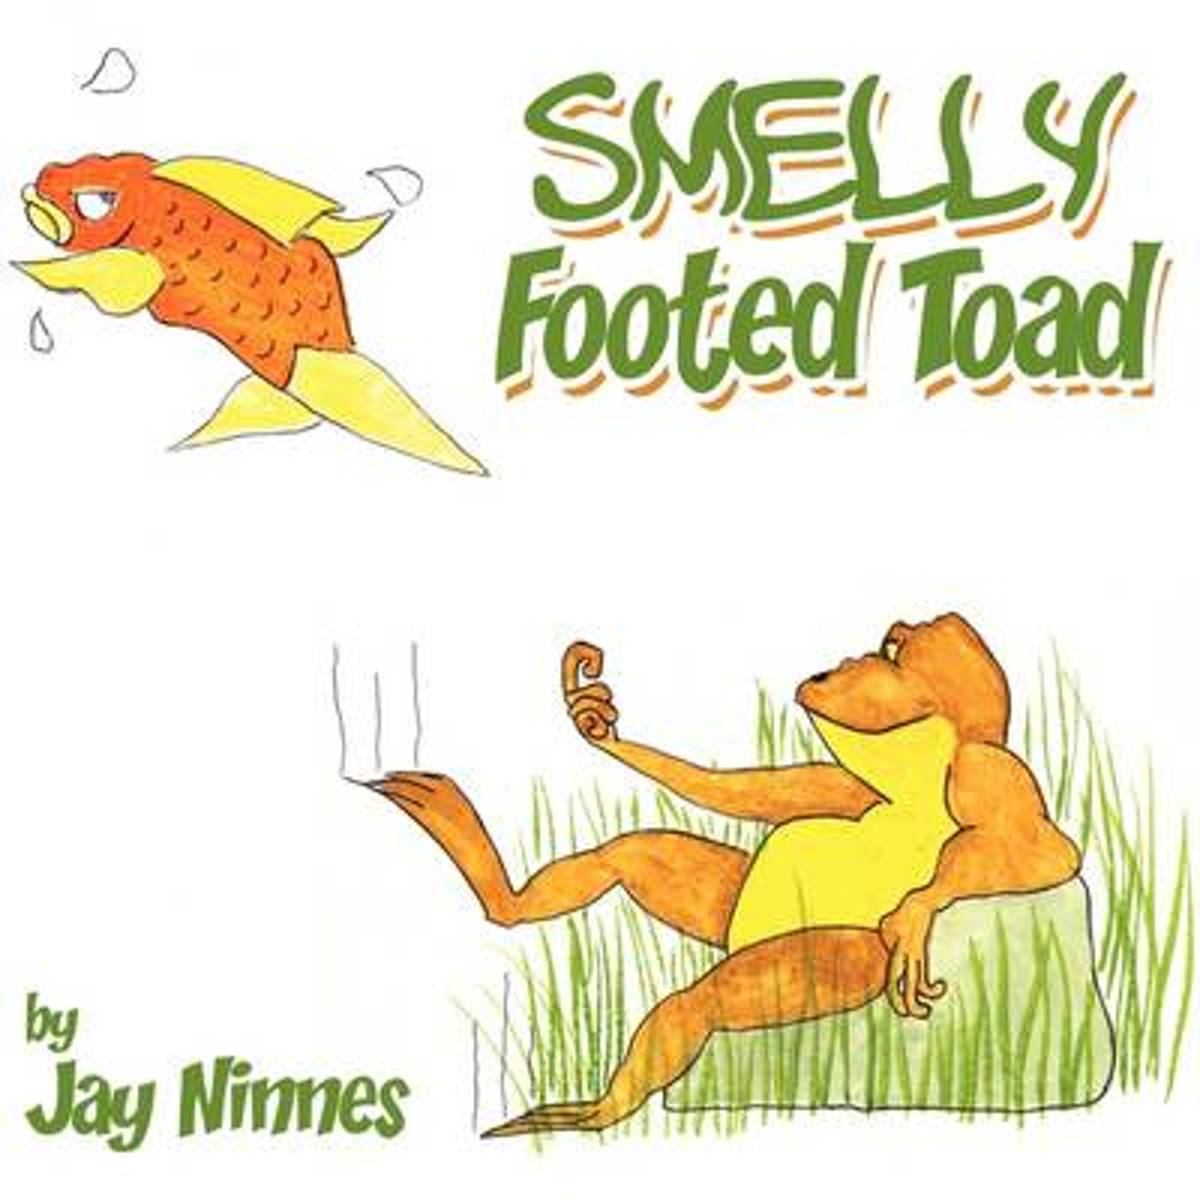 Smelly Footed Toad